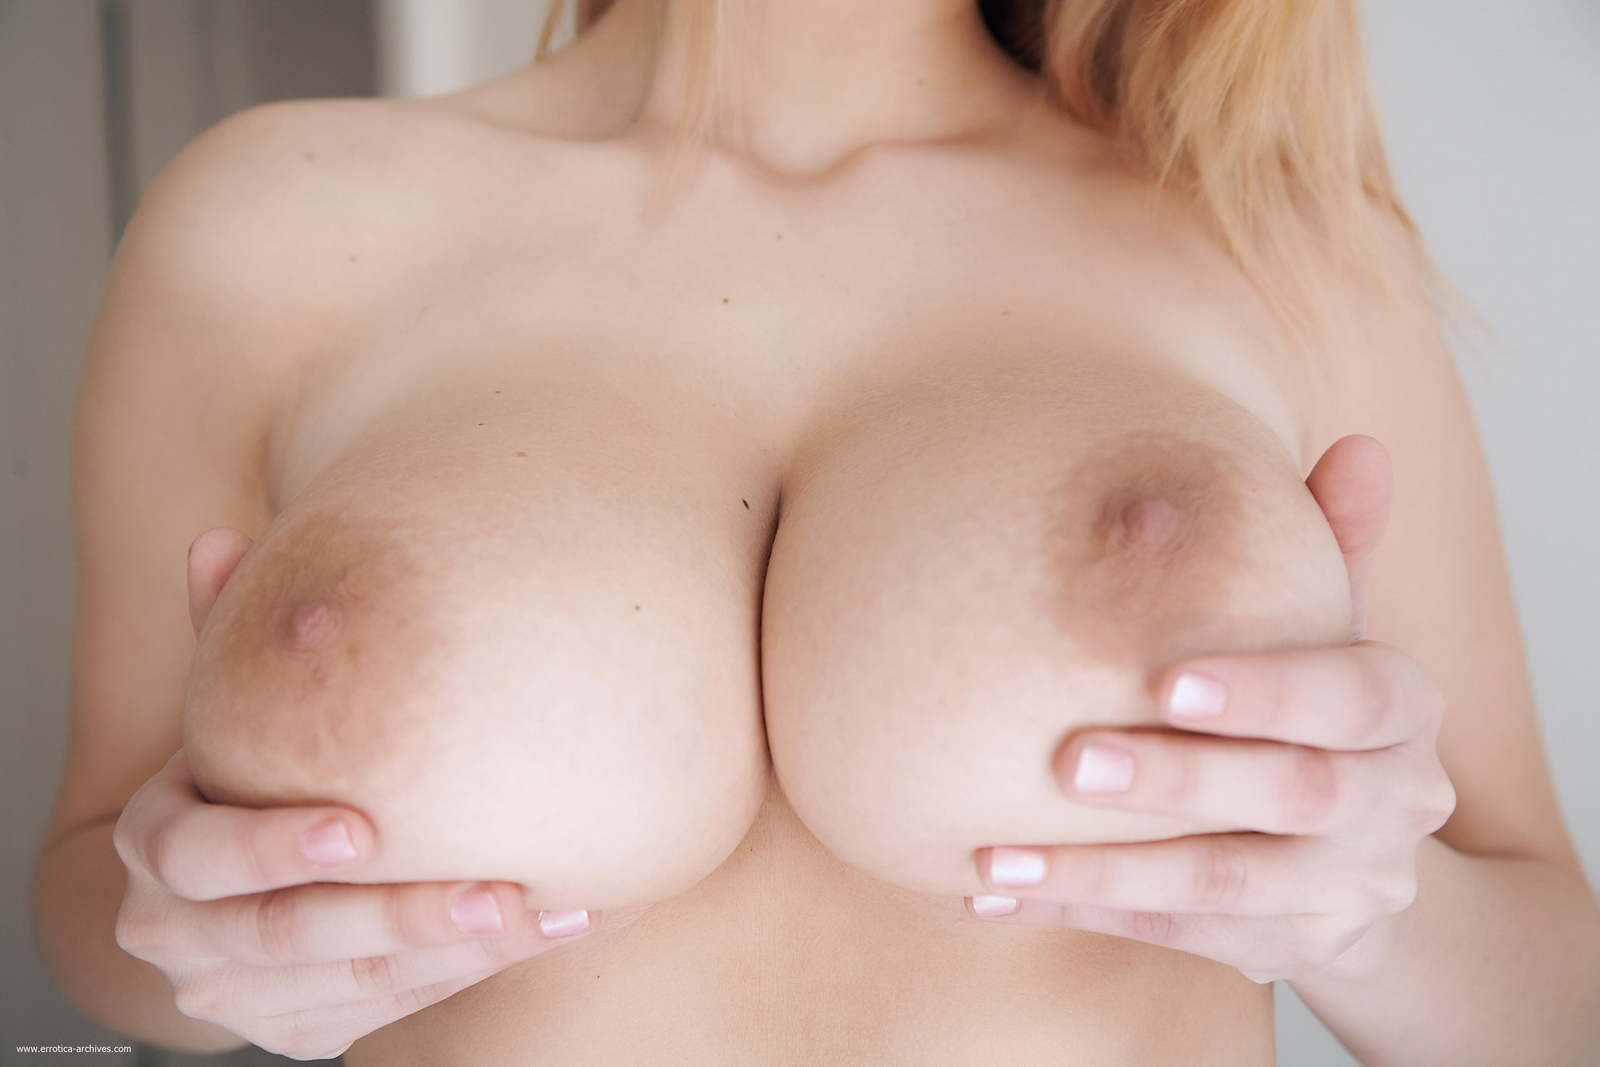 cathy-huge-tits-bedroom-naked-errotica-archives-11